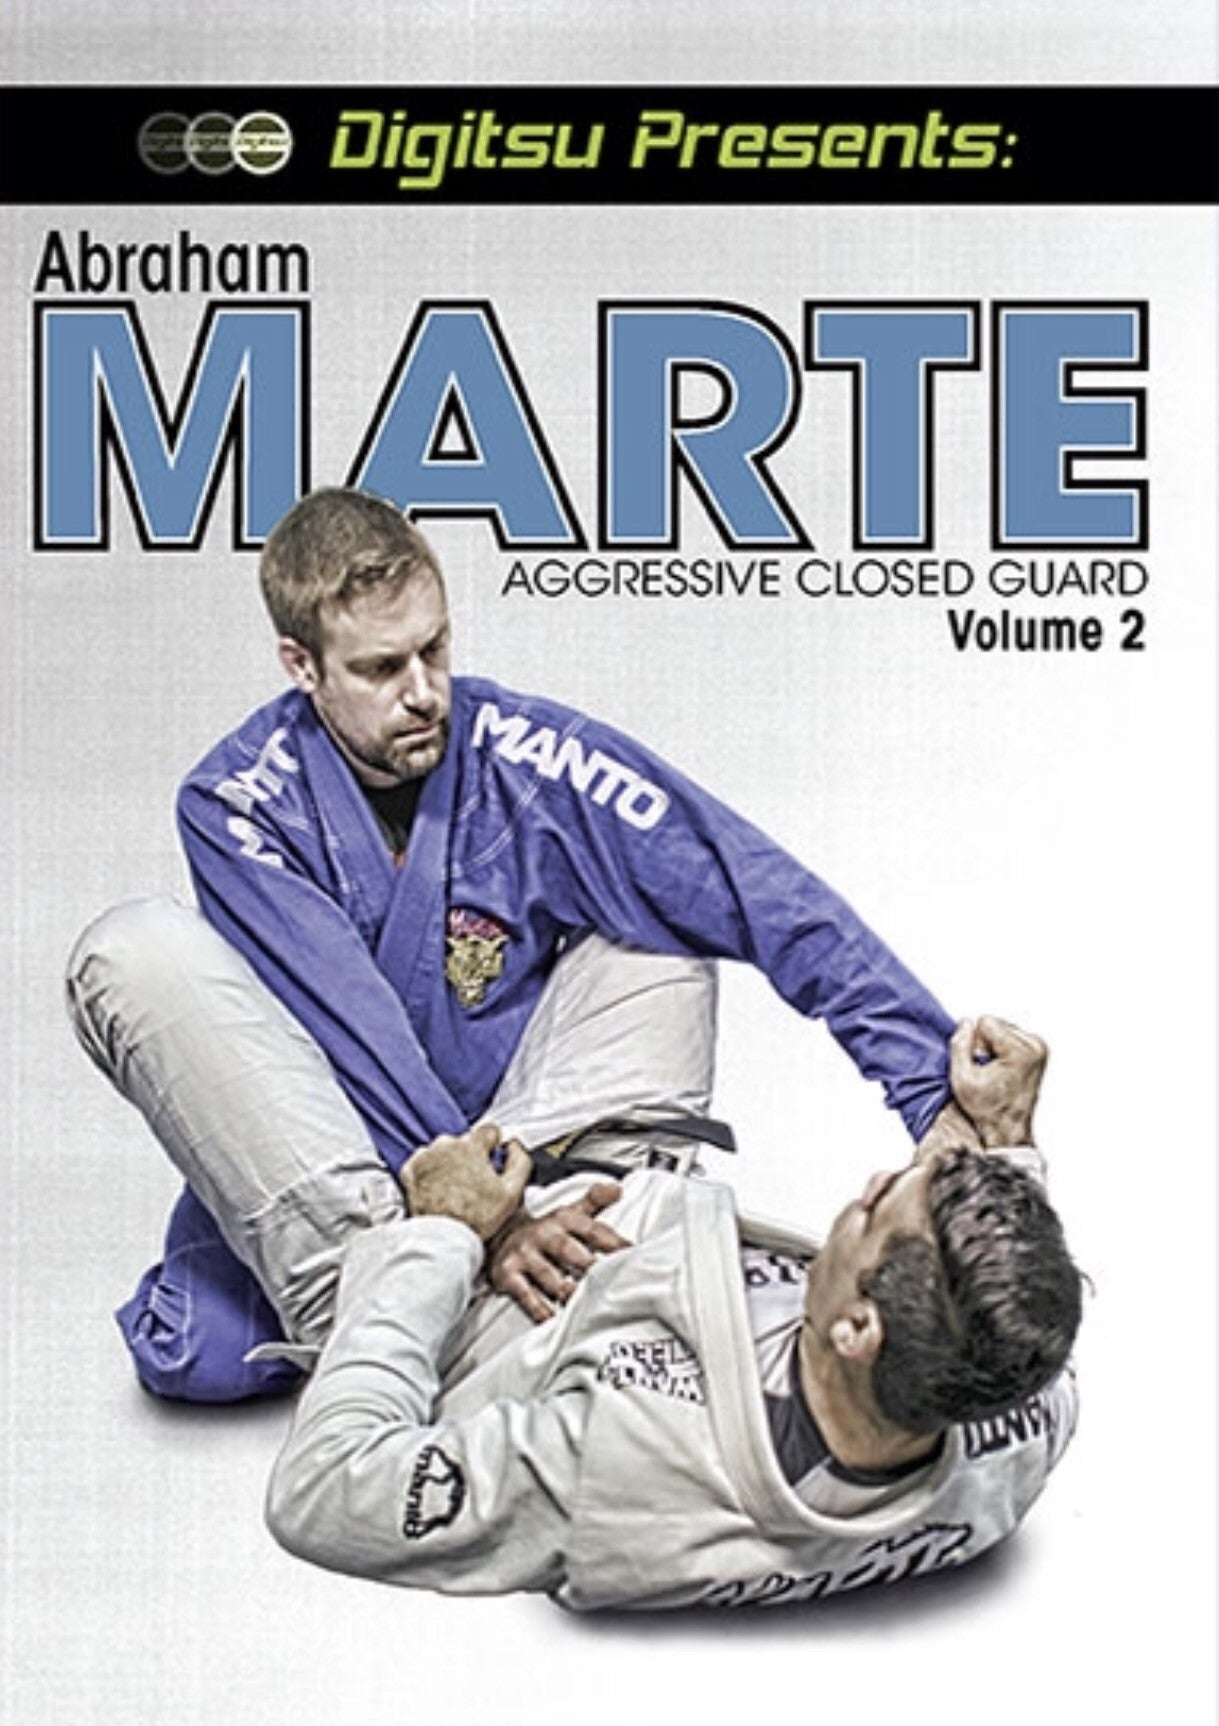 Aggressive Closed Guard Vol 2 DVD with Abraham Marte